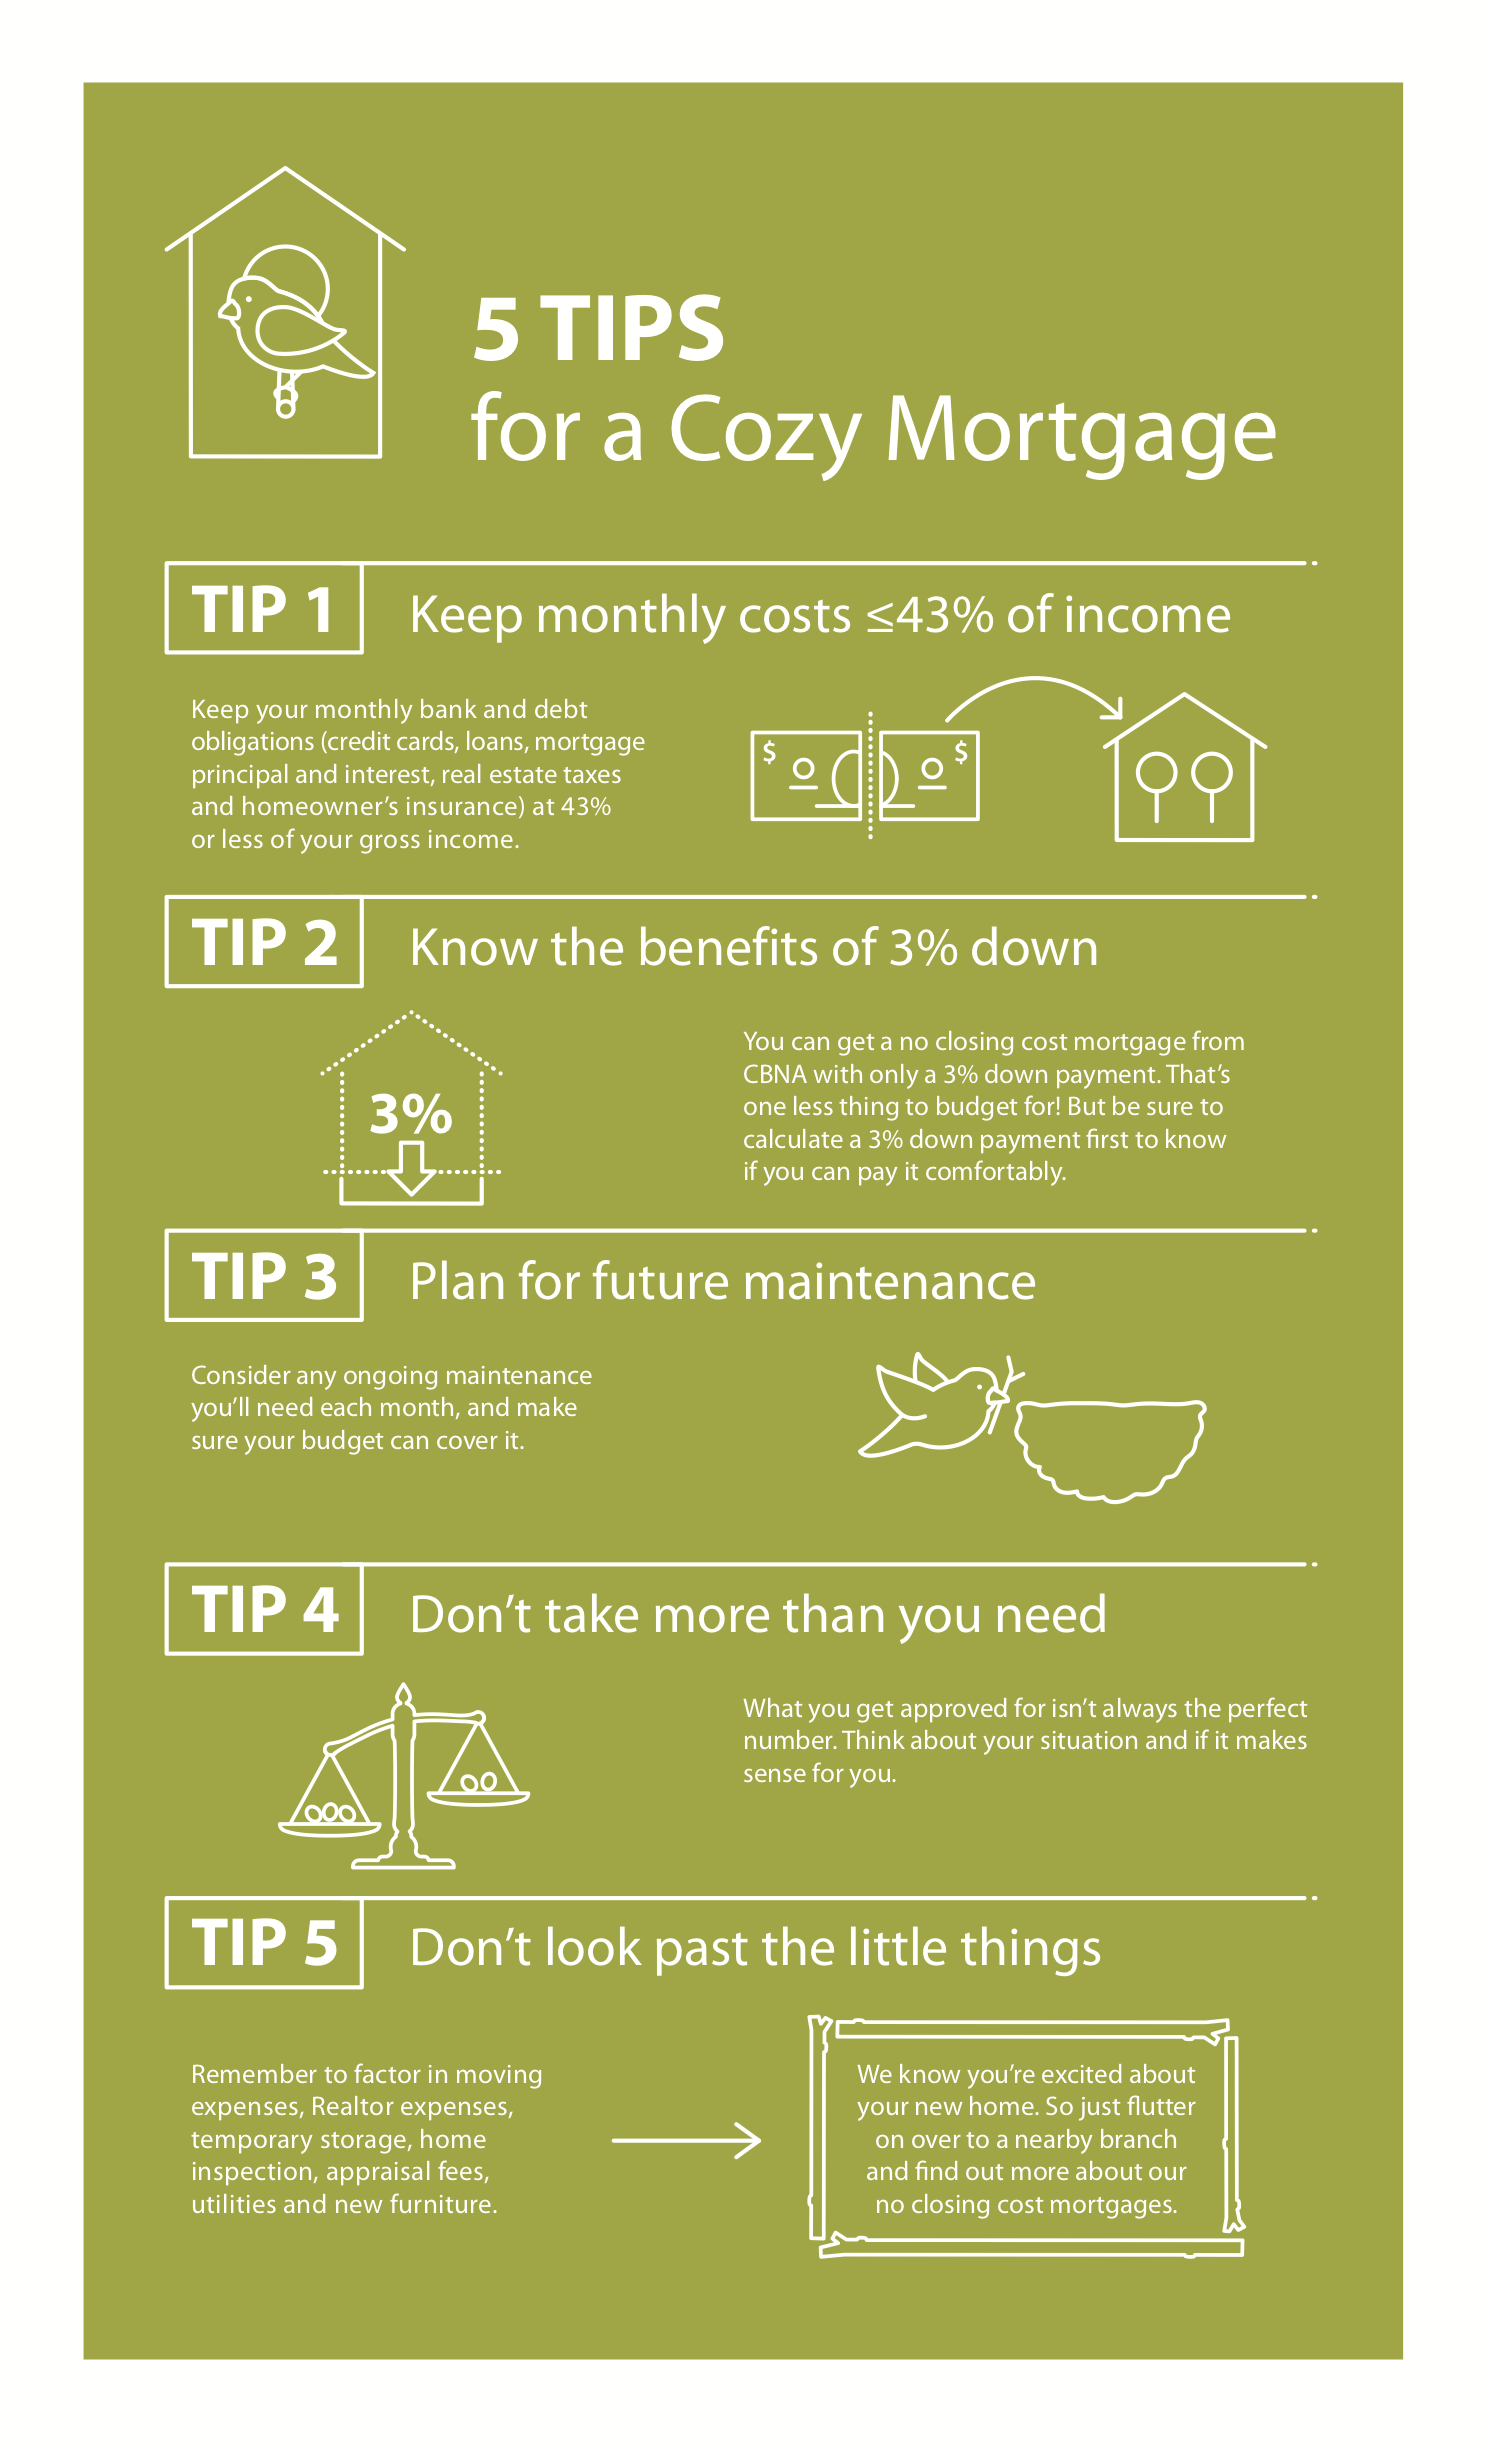 5 Tips for a Cozy Mortgage Infographic